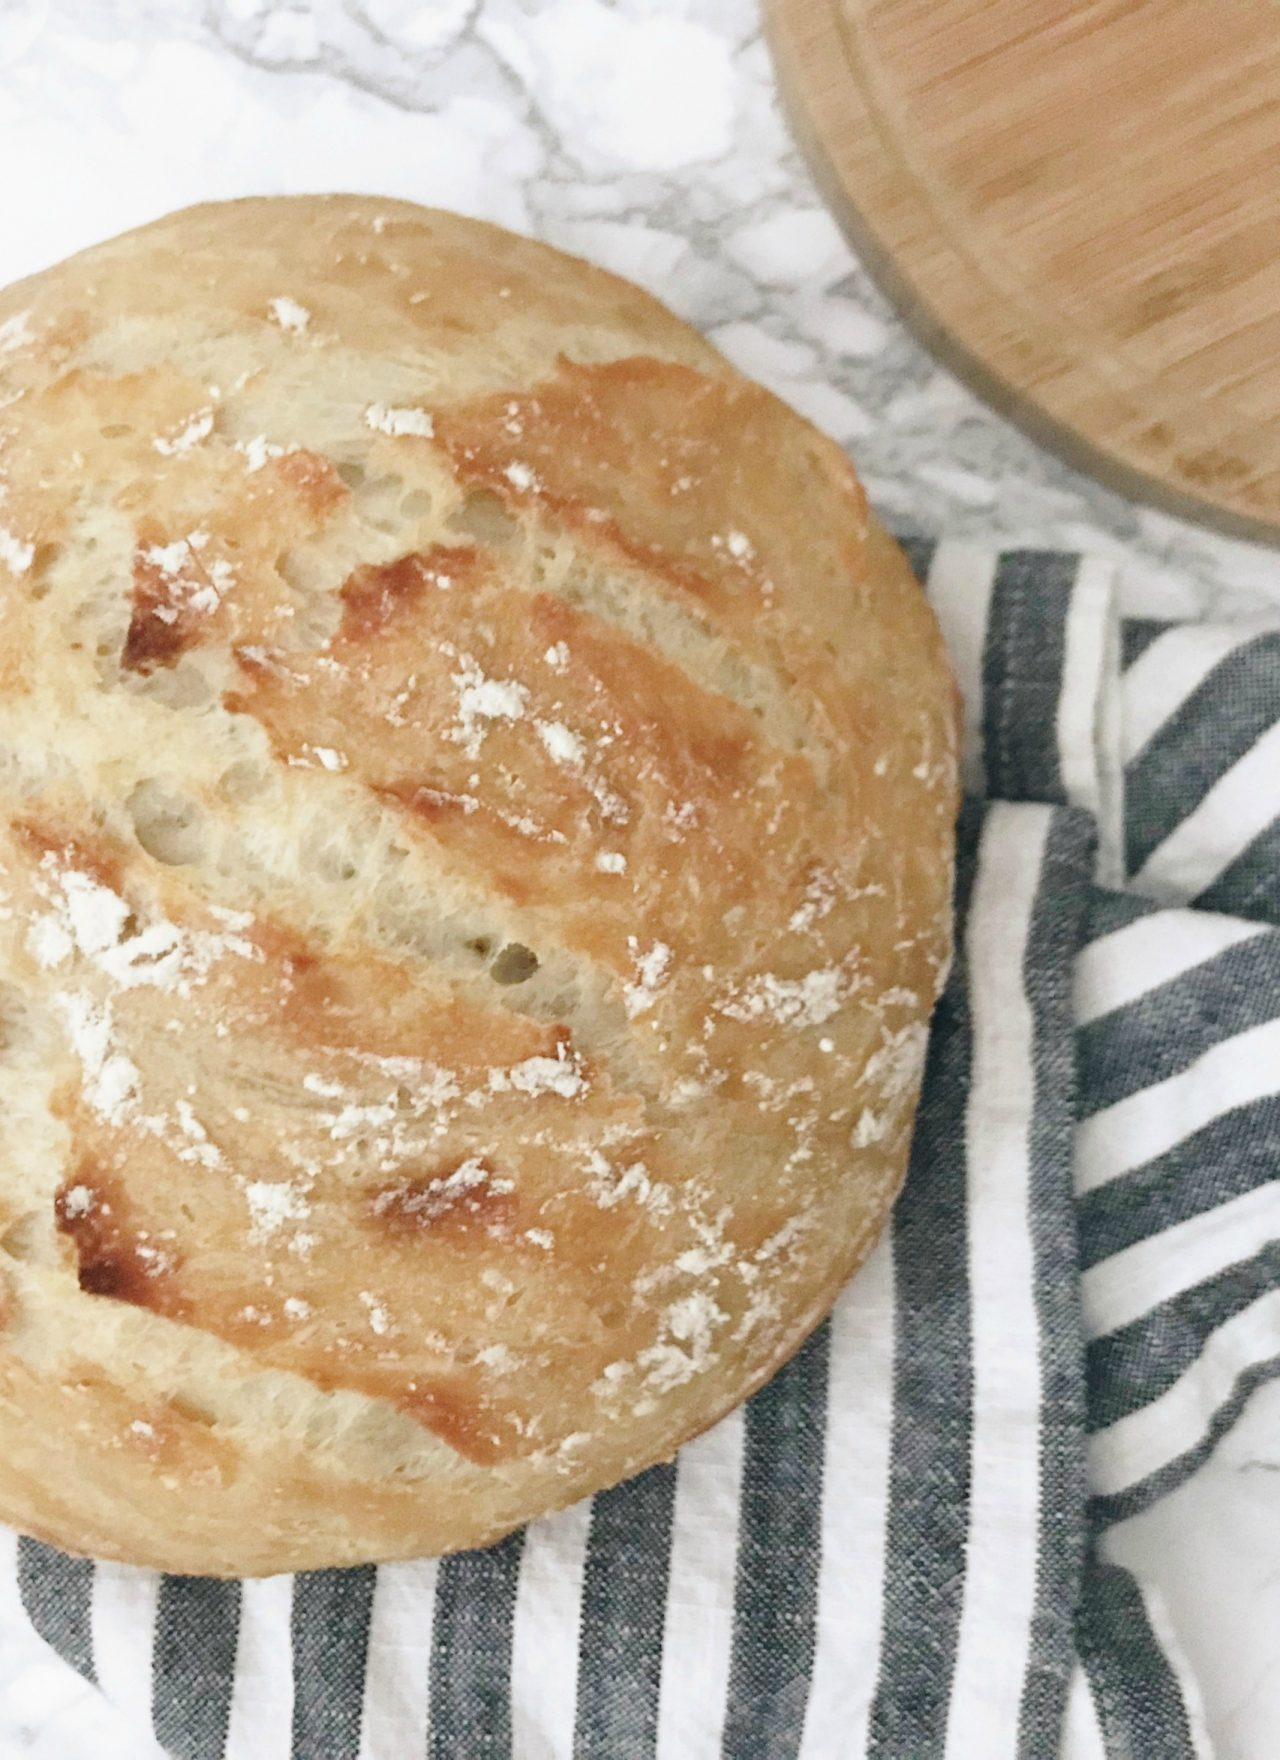 THE BEST CRUSTY BREAD RECIPE | THE EASIEST CRUSTY BREAD RECIPE | THE EASIEST NO KNEAD CRUSTY BREAD RECIPE | THE EASIEST BREAD EVER | THE BEST EVER CRUSTY BREAD RECIPE | SIMPLE CRUSTY BREAD RECIPE